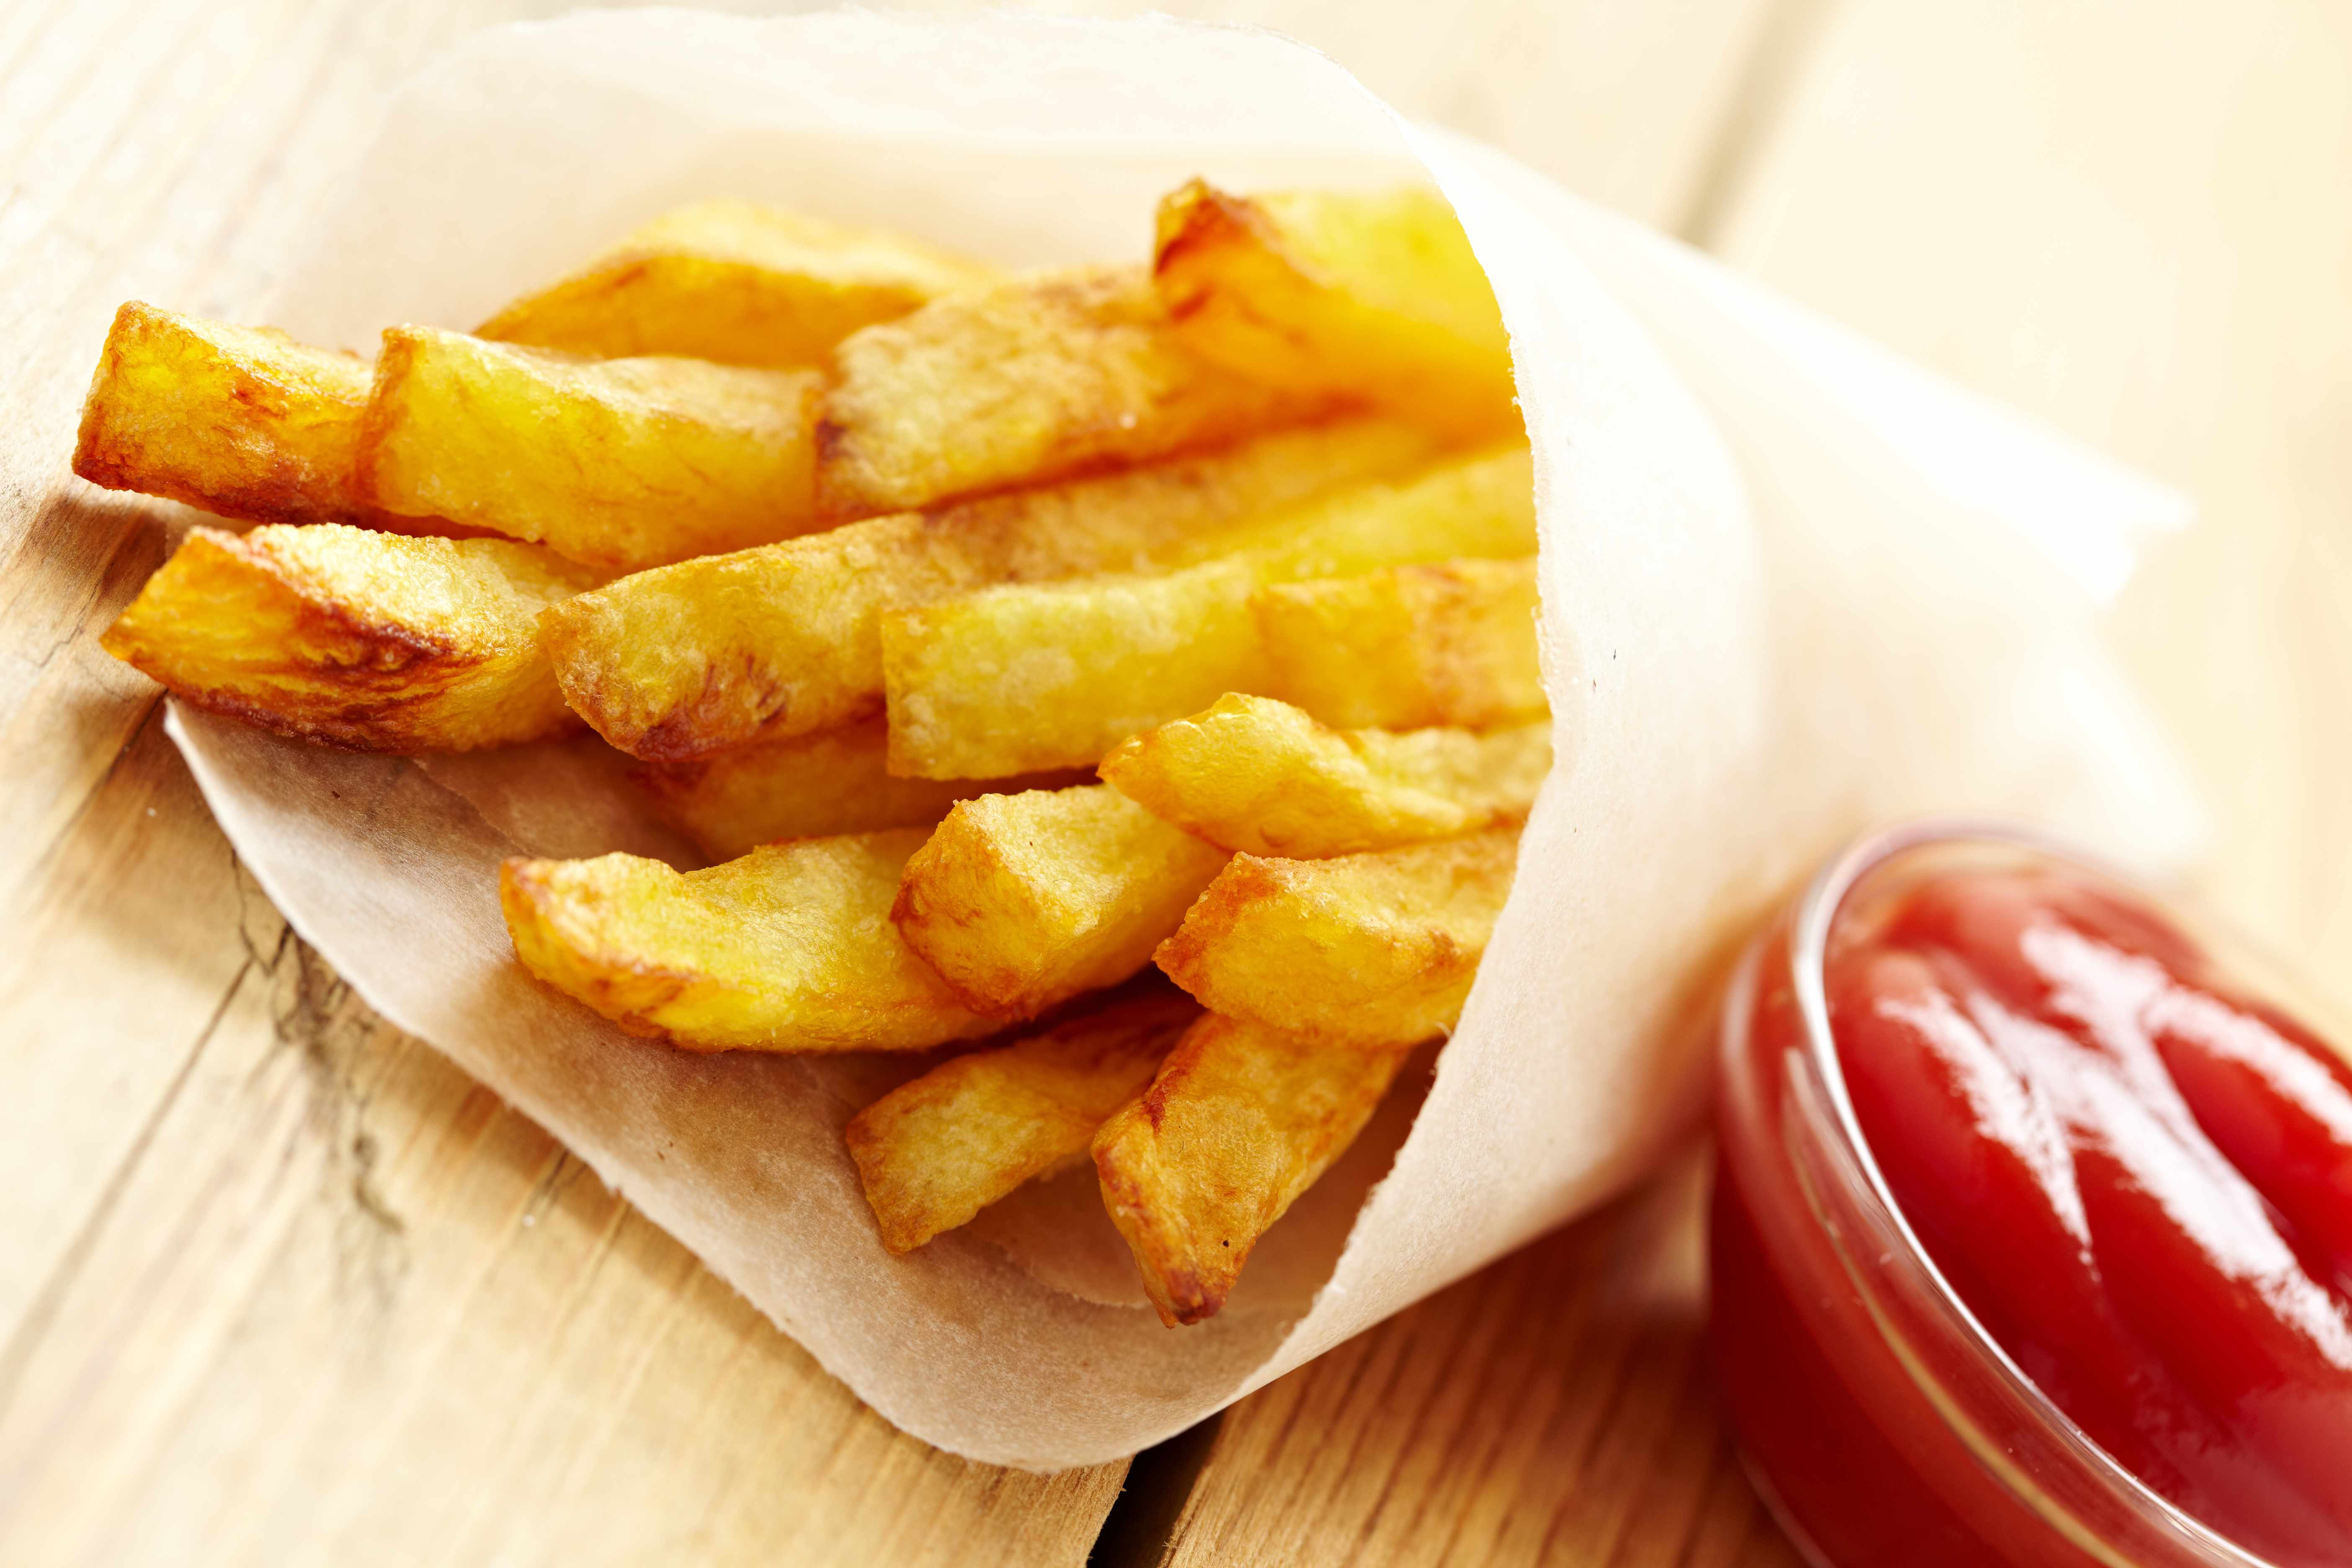 a bag of crispy French Fries and a container of ketchup